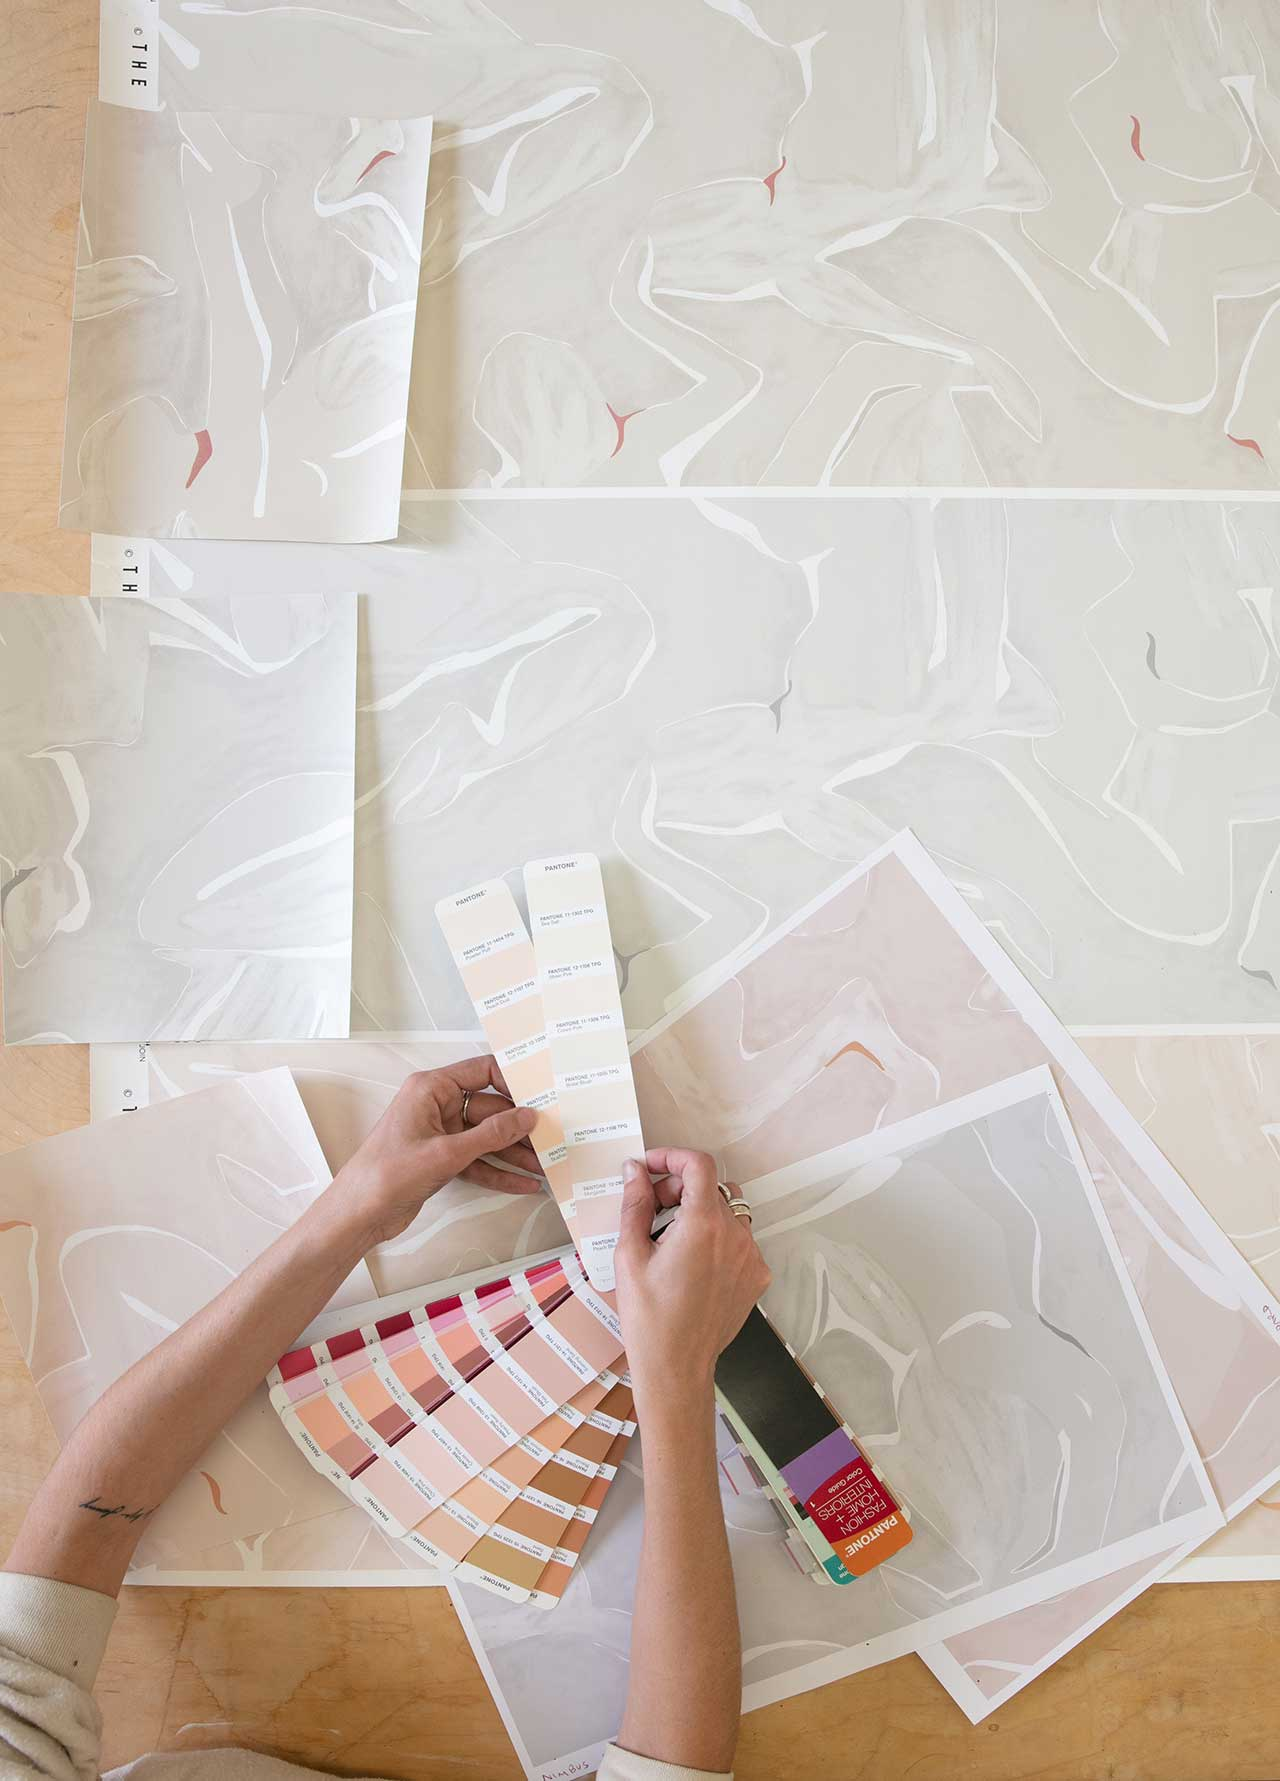 artist's hands holding paint chips over abstract drawings